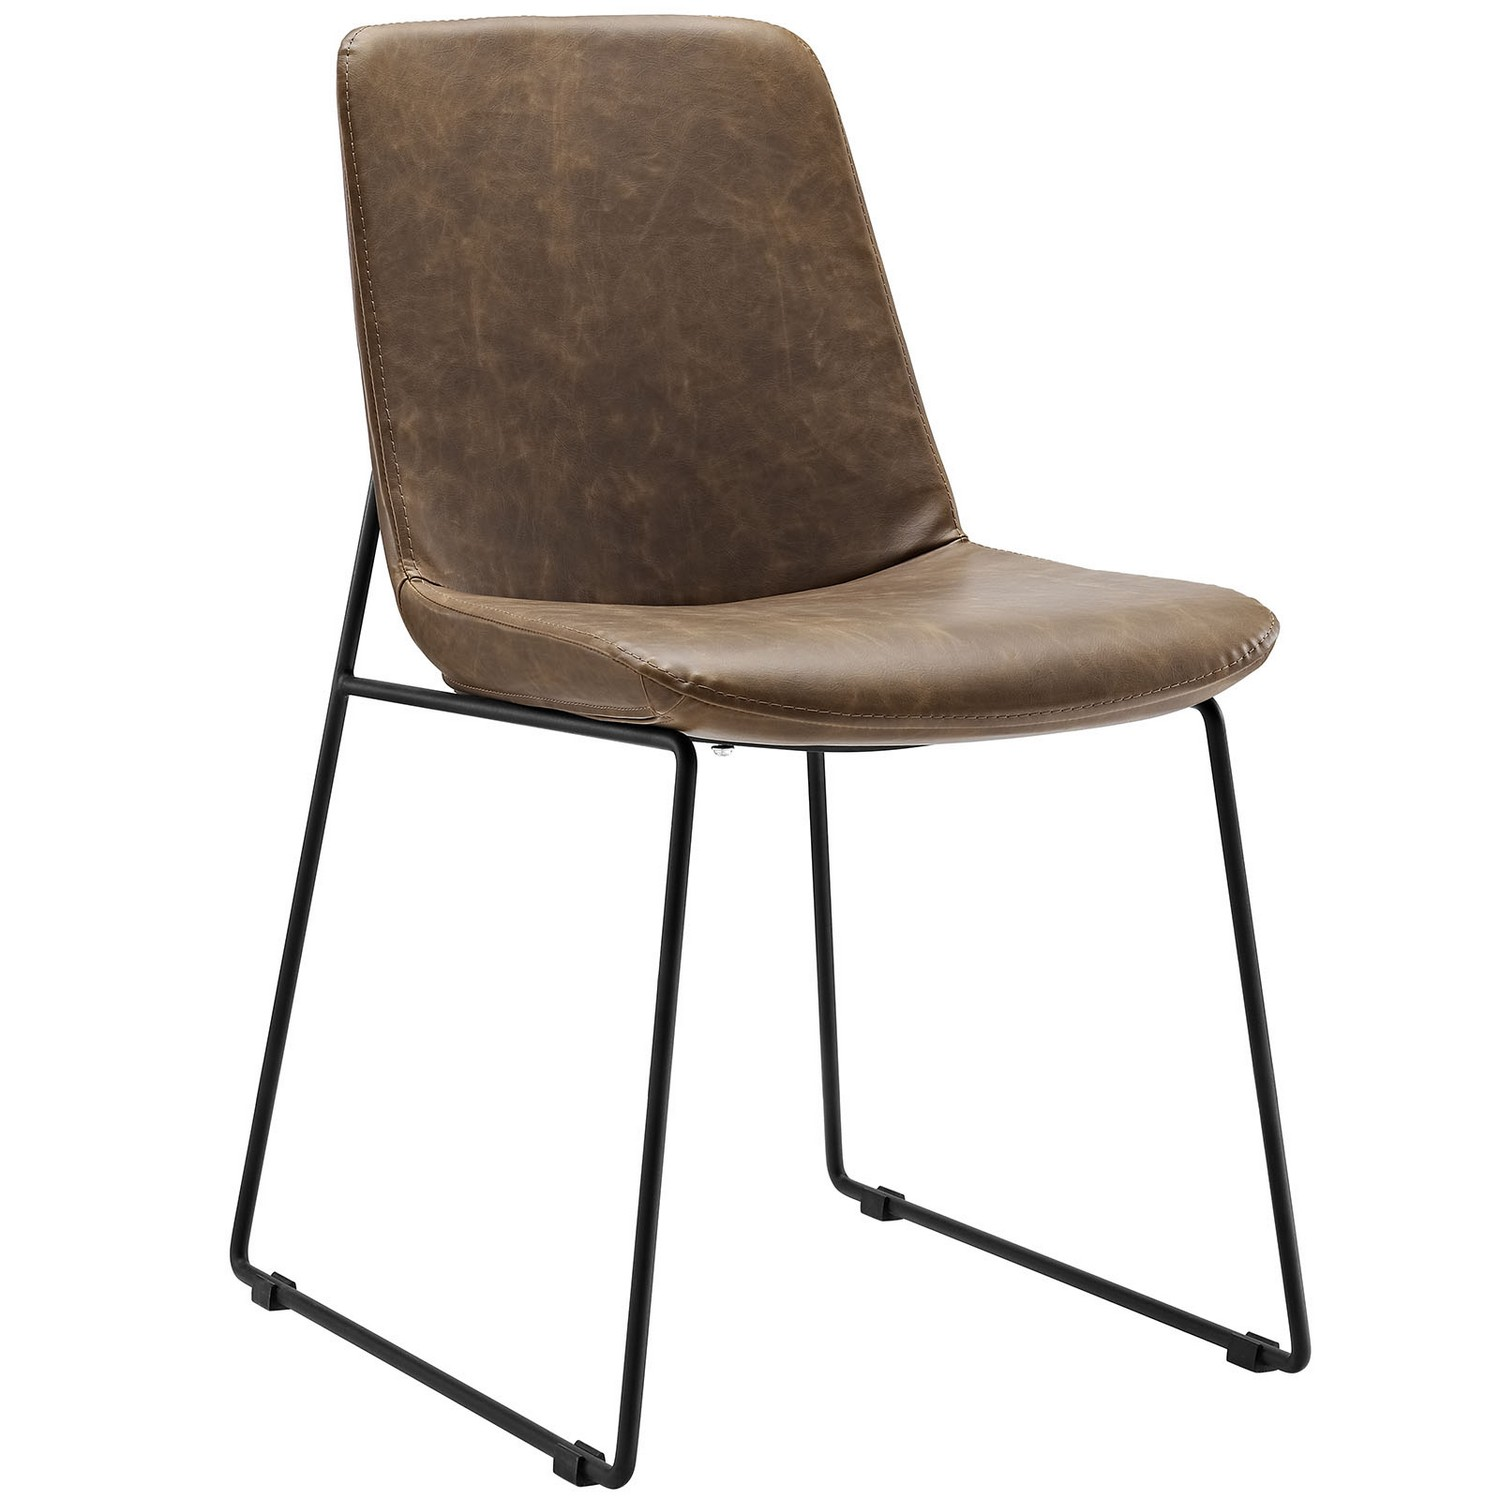 Modway Invite Dining Side Chair - Brown